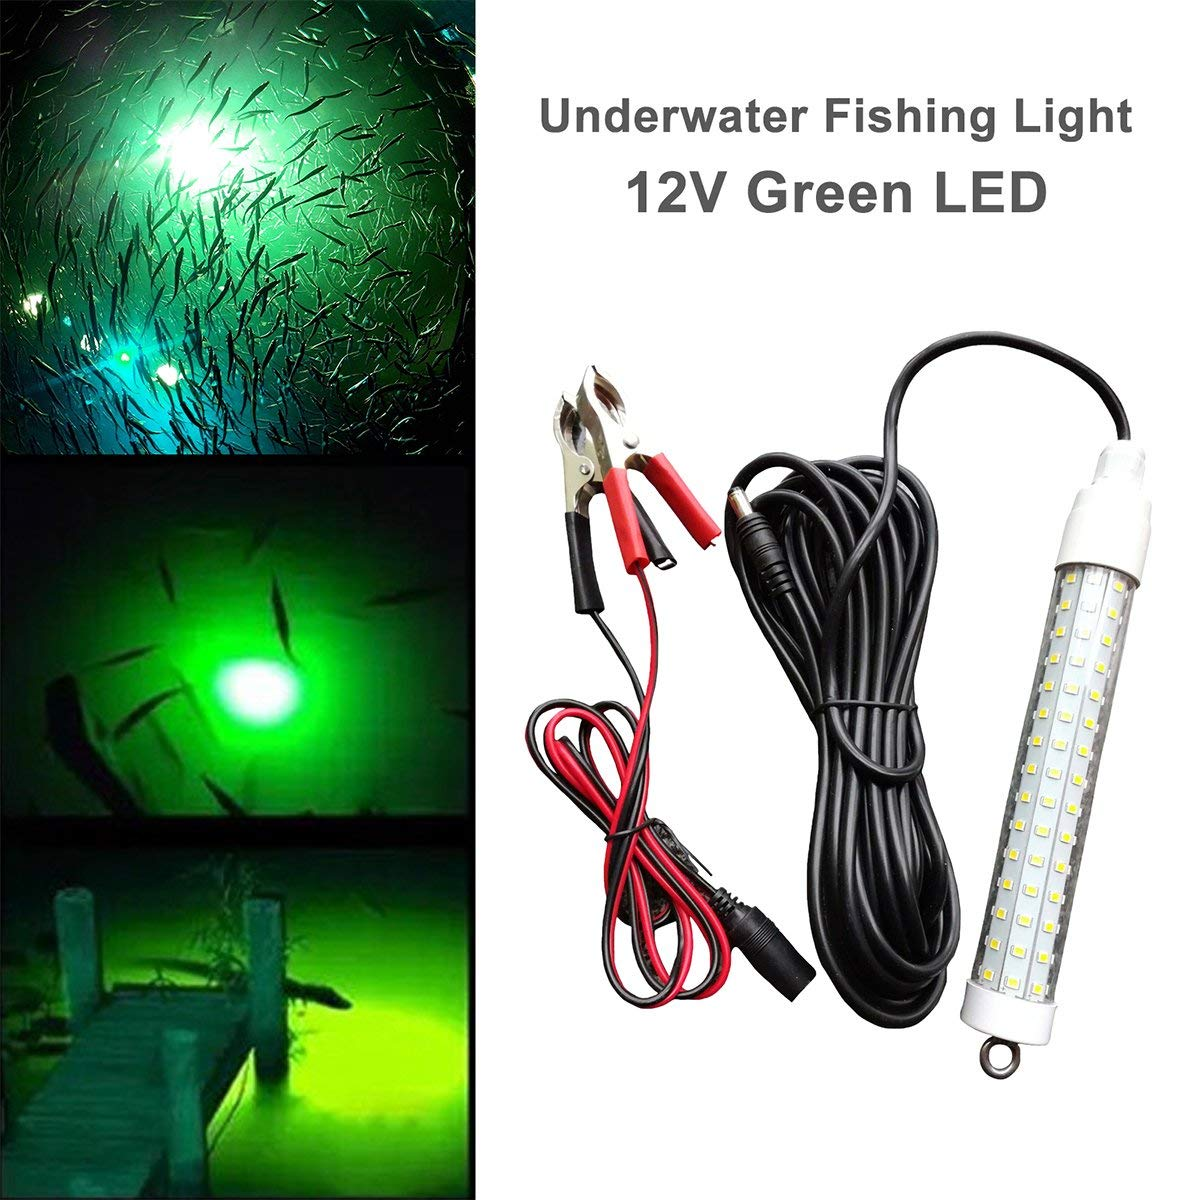 OutdoorCapitol™ 12V Underwater Fishing Light